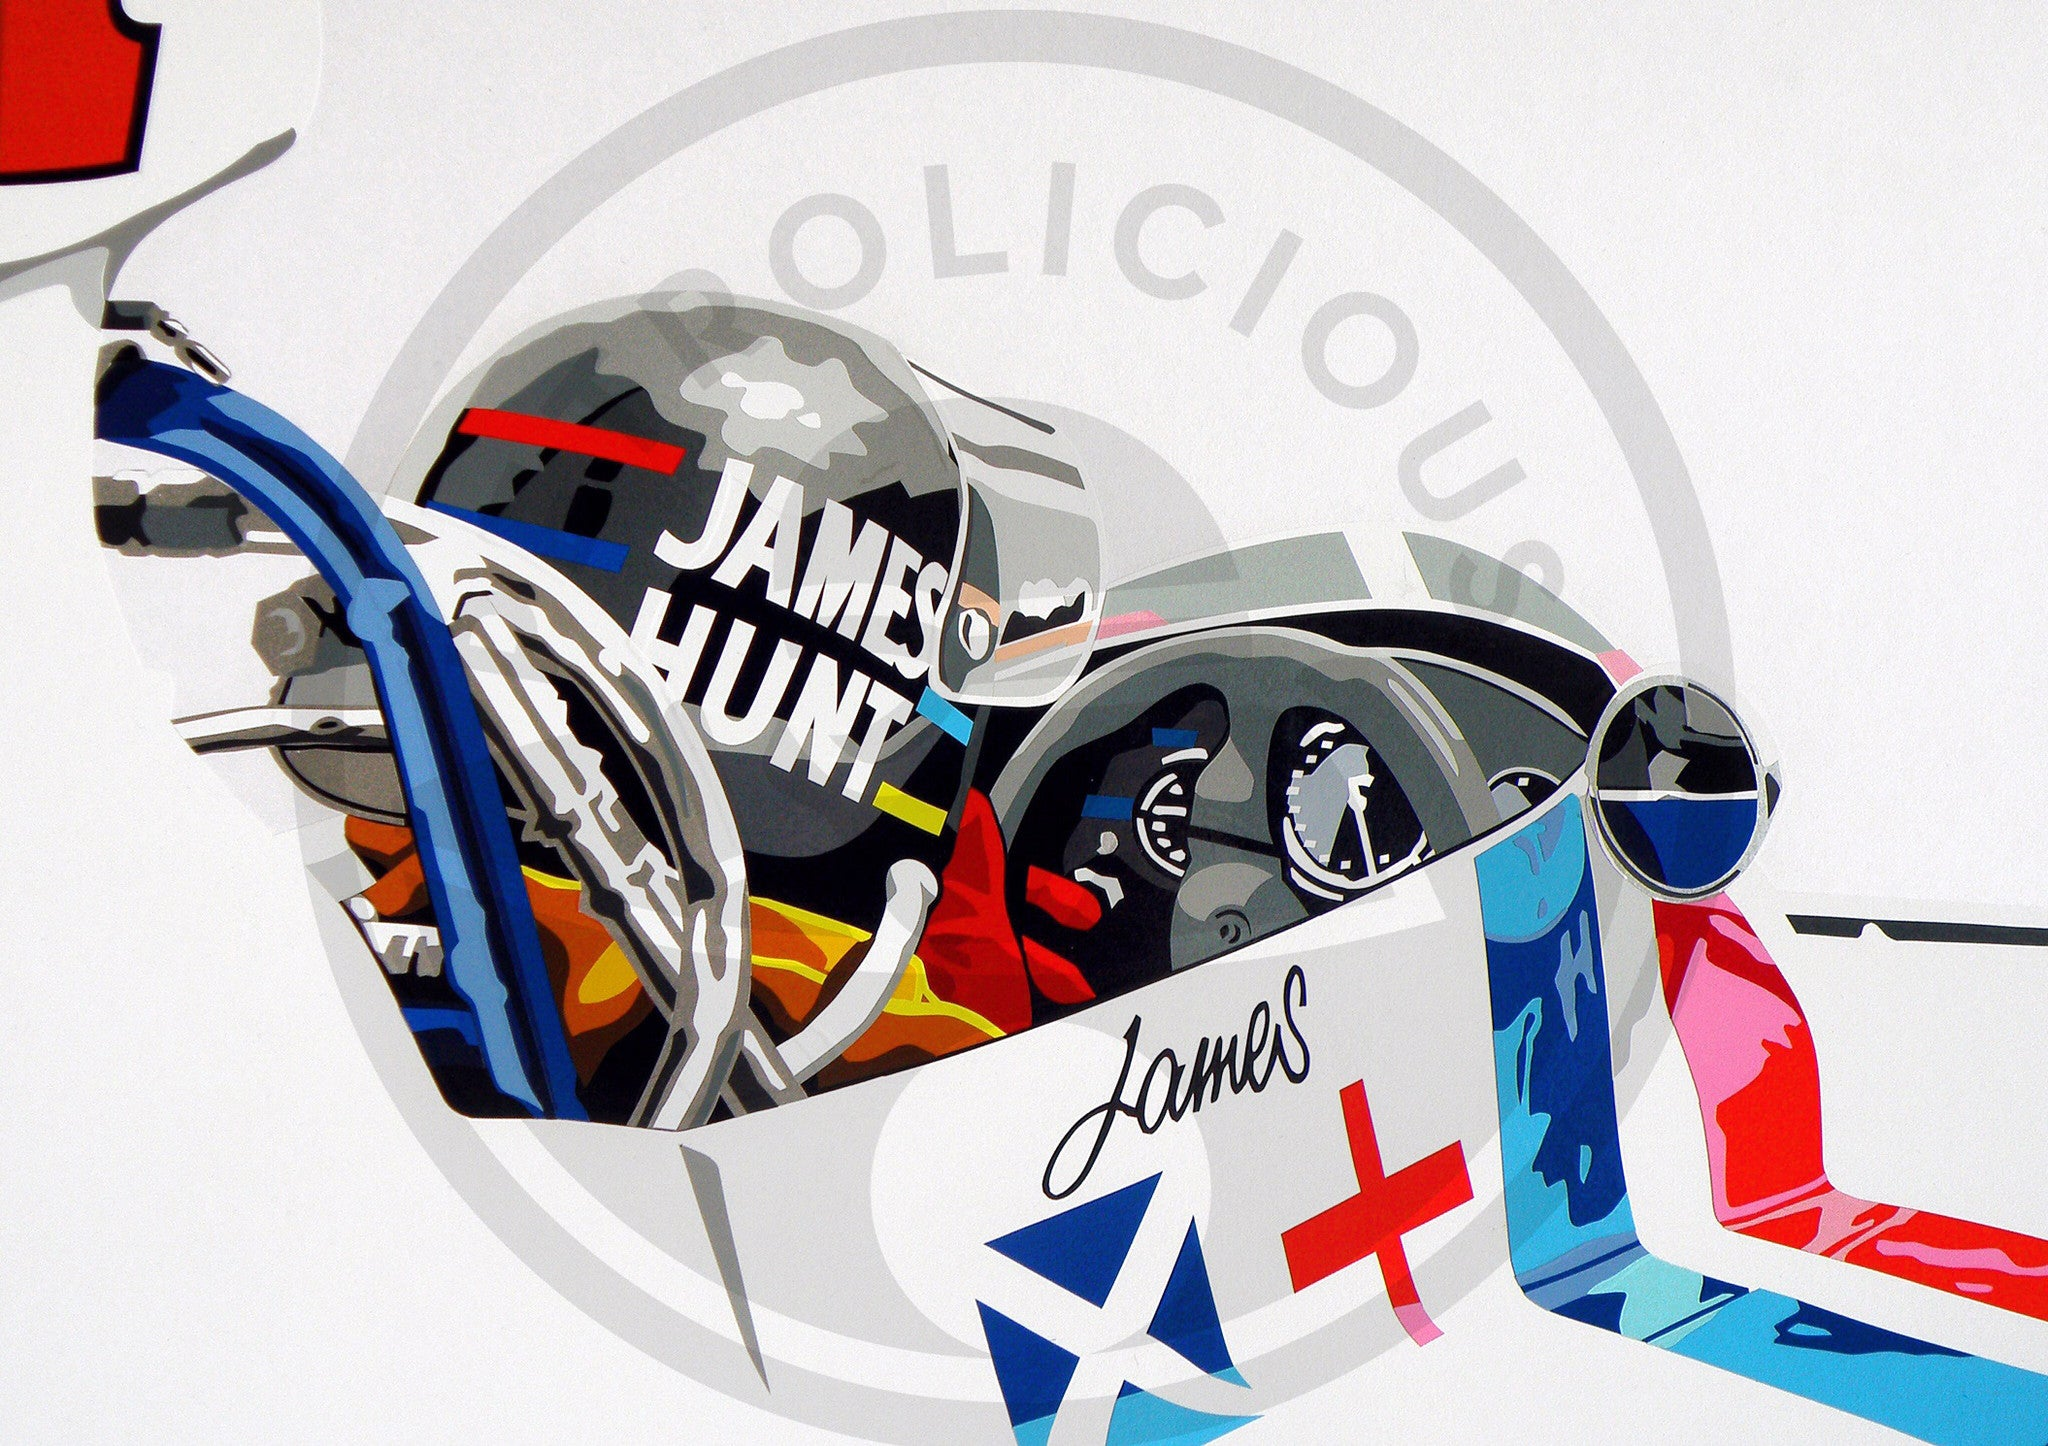 James Hunt Speed Icons Limited Edition Print